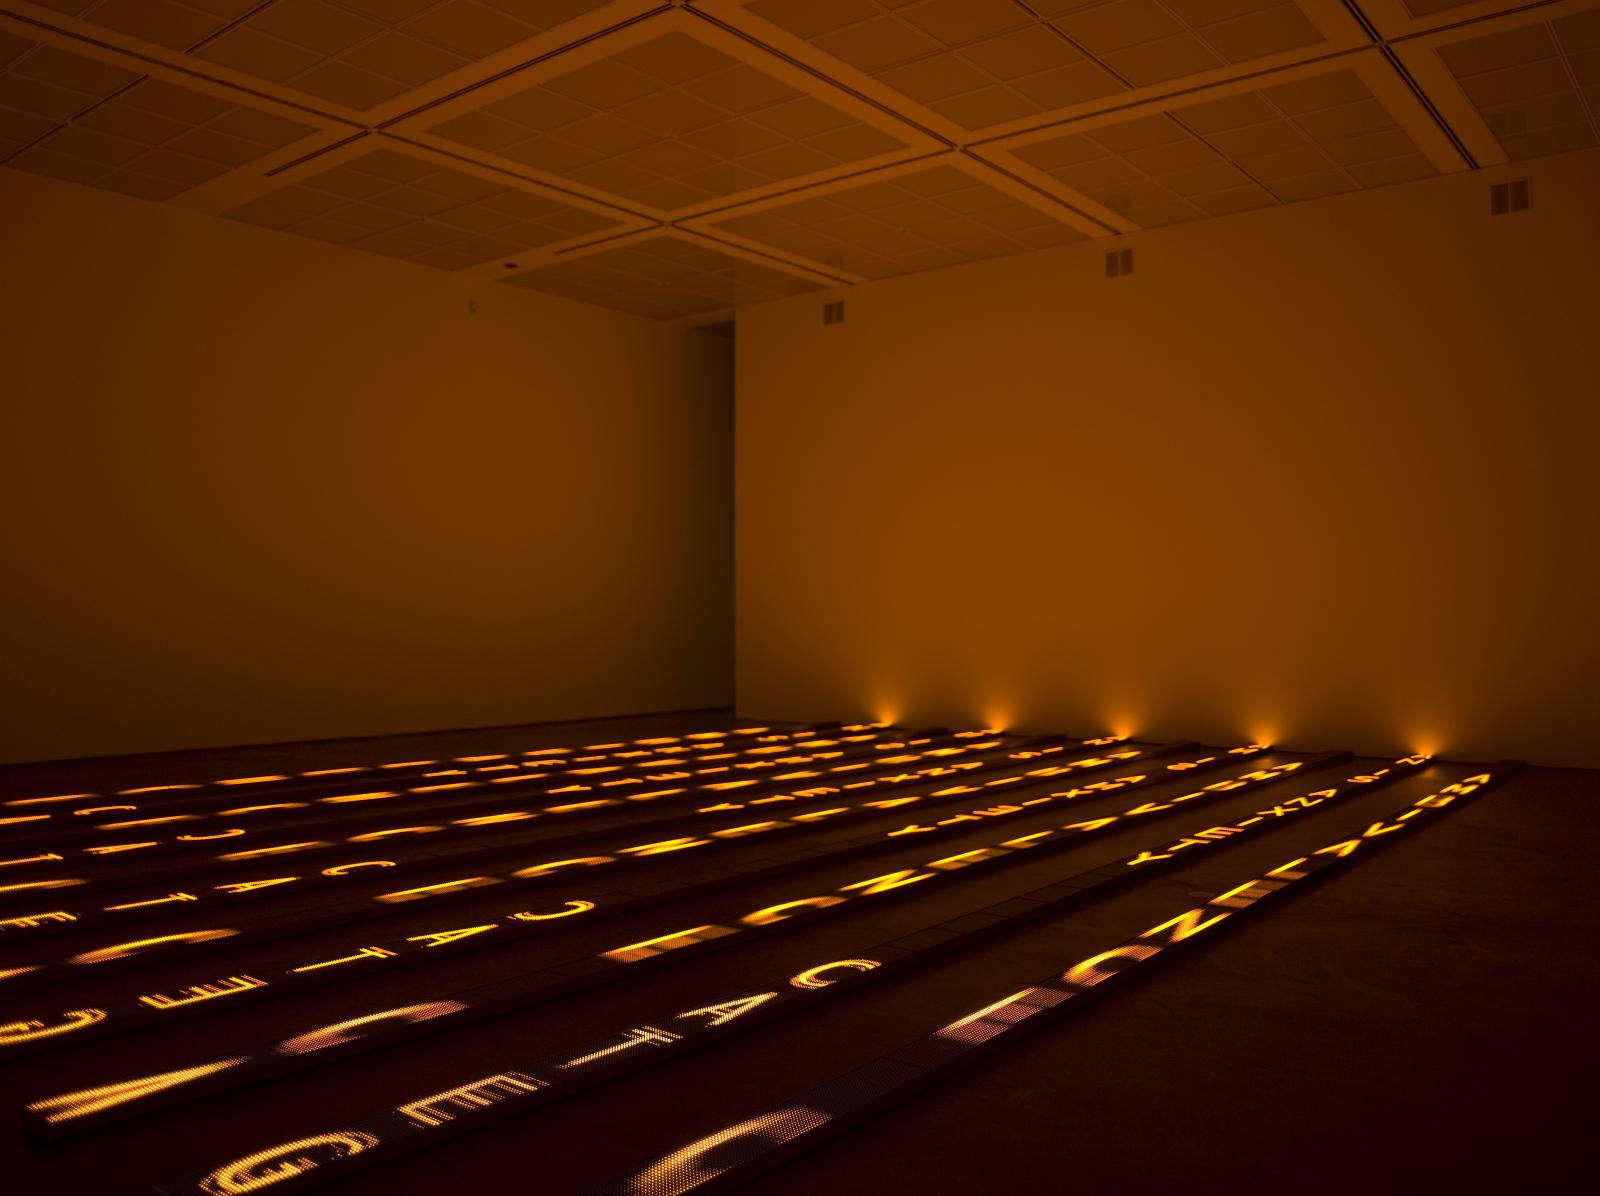 In a large darkened room, large letters are illuminated in yellow in vertical rows on the floor. These letters cast a warm glow over the room.